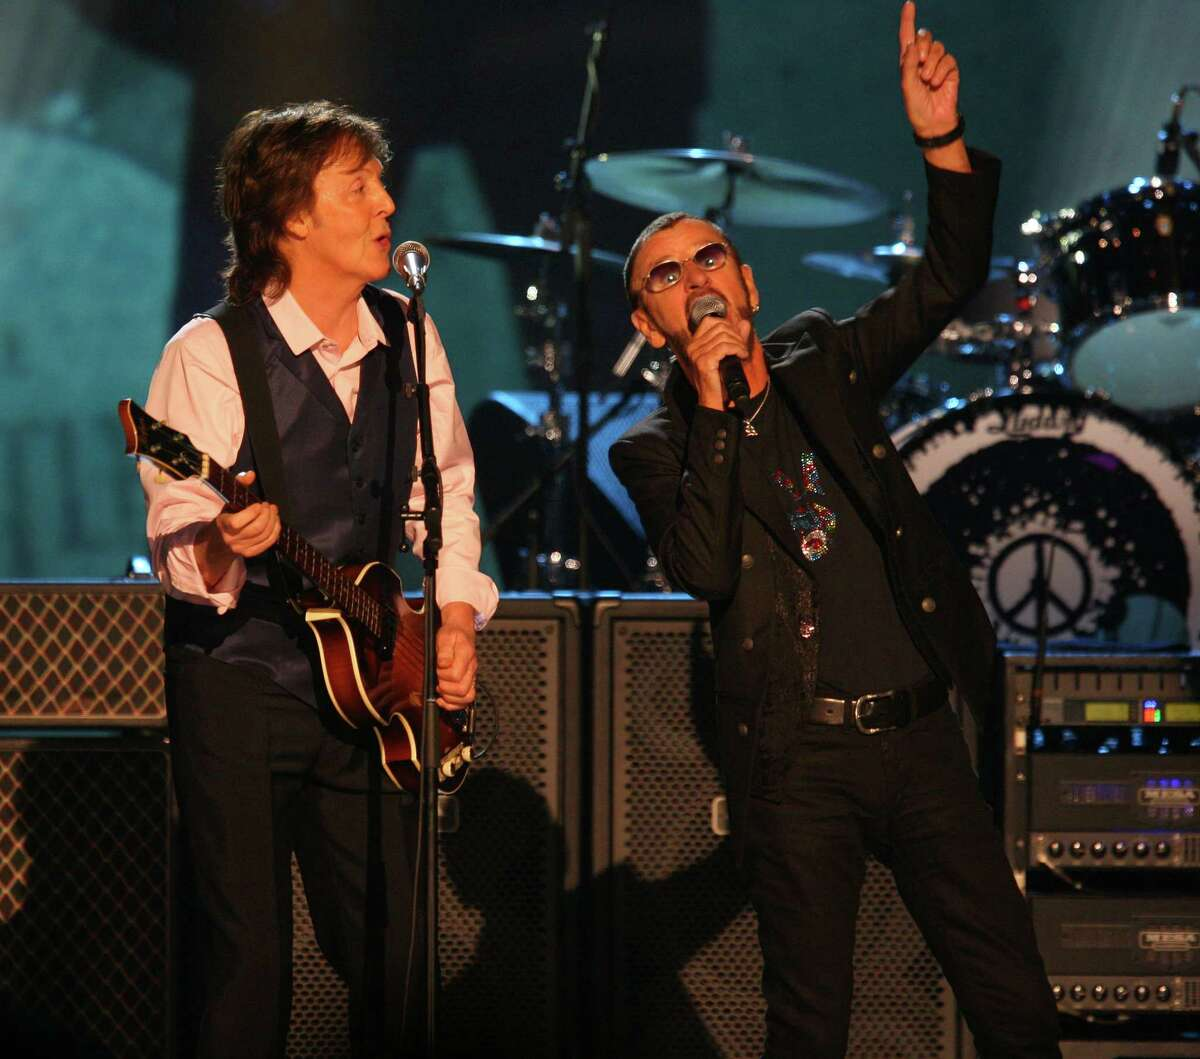 Paul McCartney and Ringo Starr perform at The Night that Changed America: A Grammy Salute to the Beatles, on Monday, Jan. 27, 2014, in Los Angeles. (Photo by Zach Cordner/Invision/AP) ORG XMIT: CAZC103